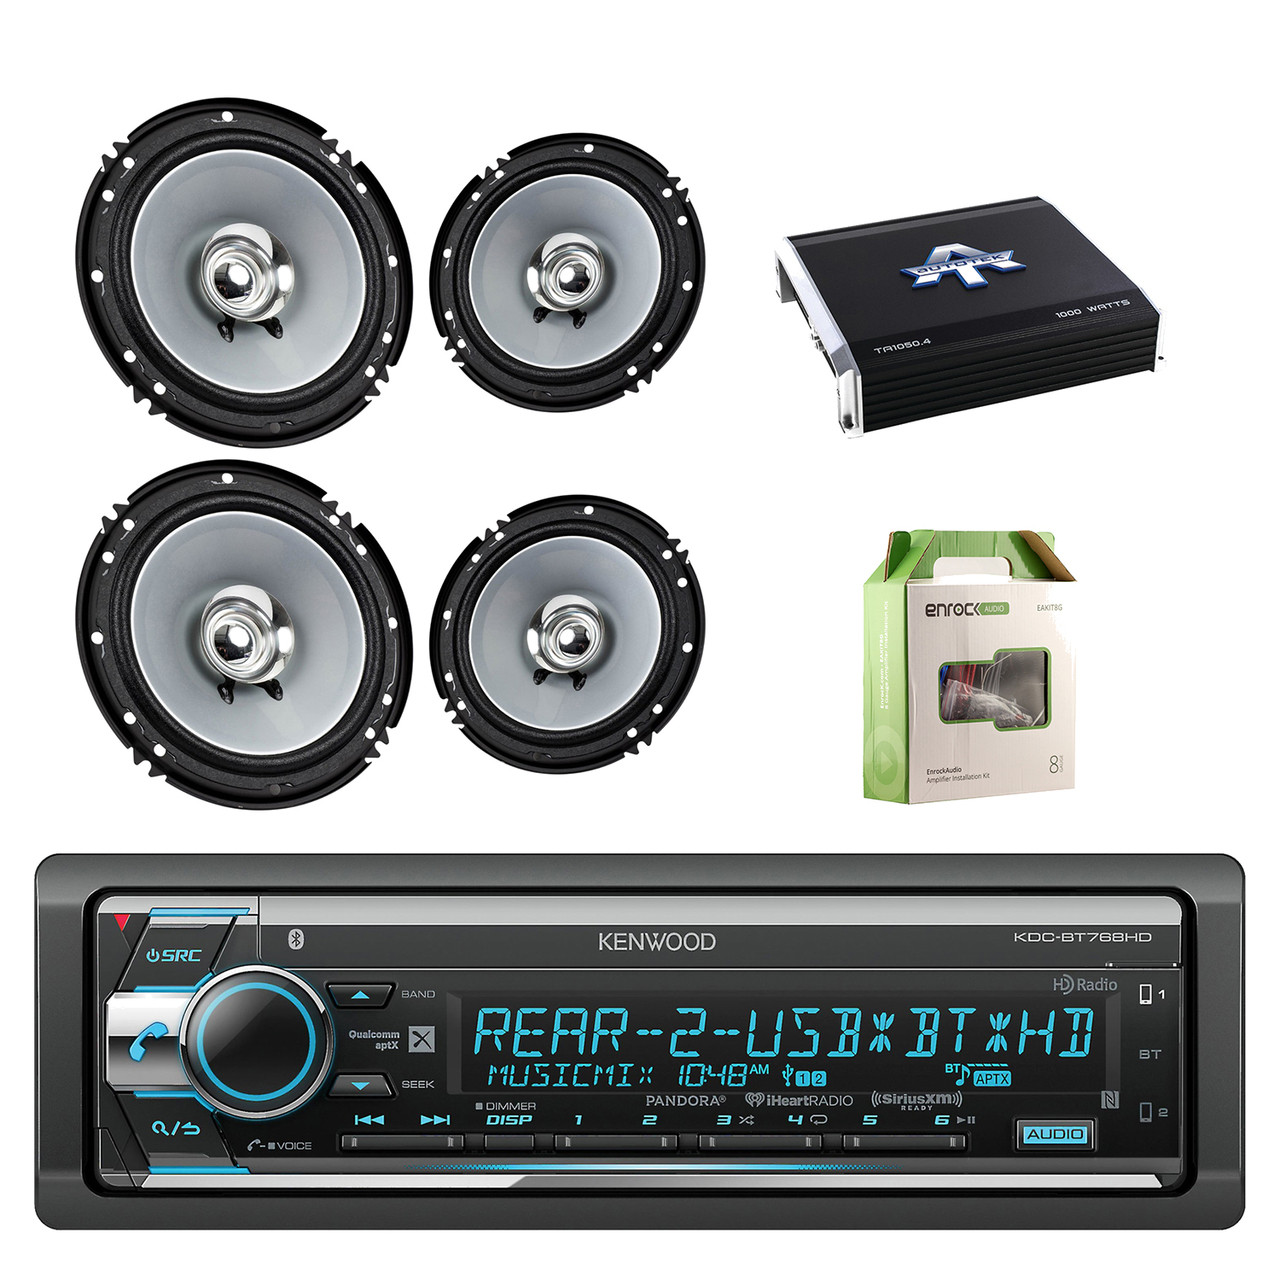 medium resolution of kenwood single din cd am fm car audio receiver w bluetooth with kenwood 6 5 inch 2 way 600 watts car audio coaxial speakers stereo 2 pairs